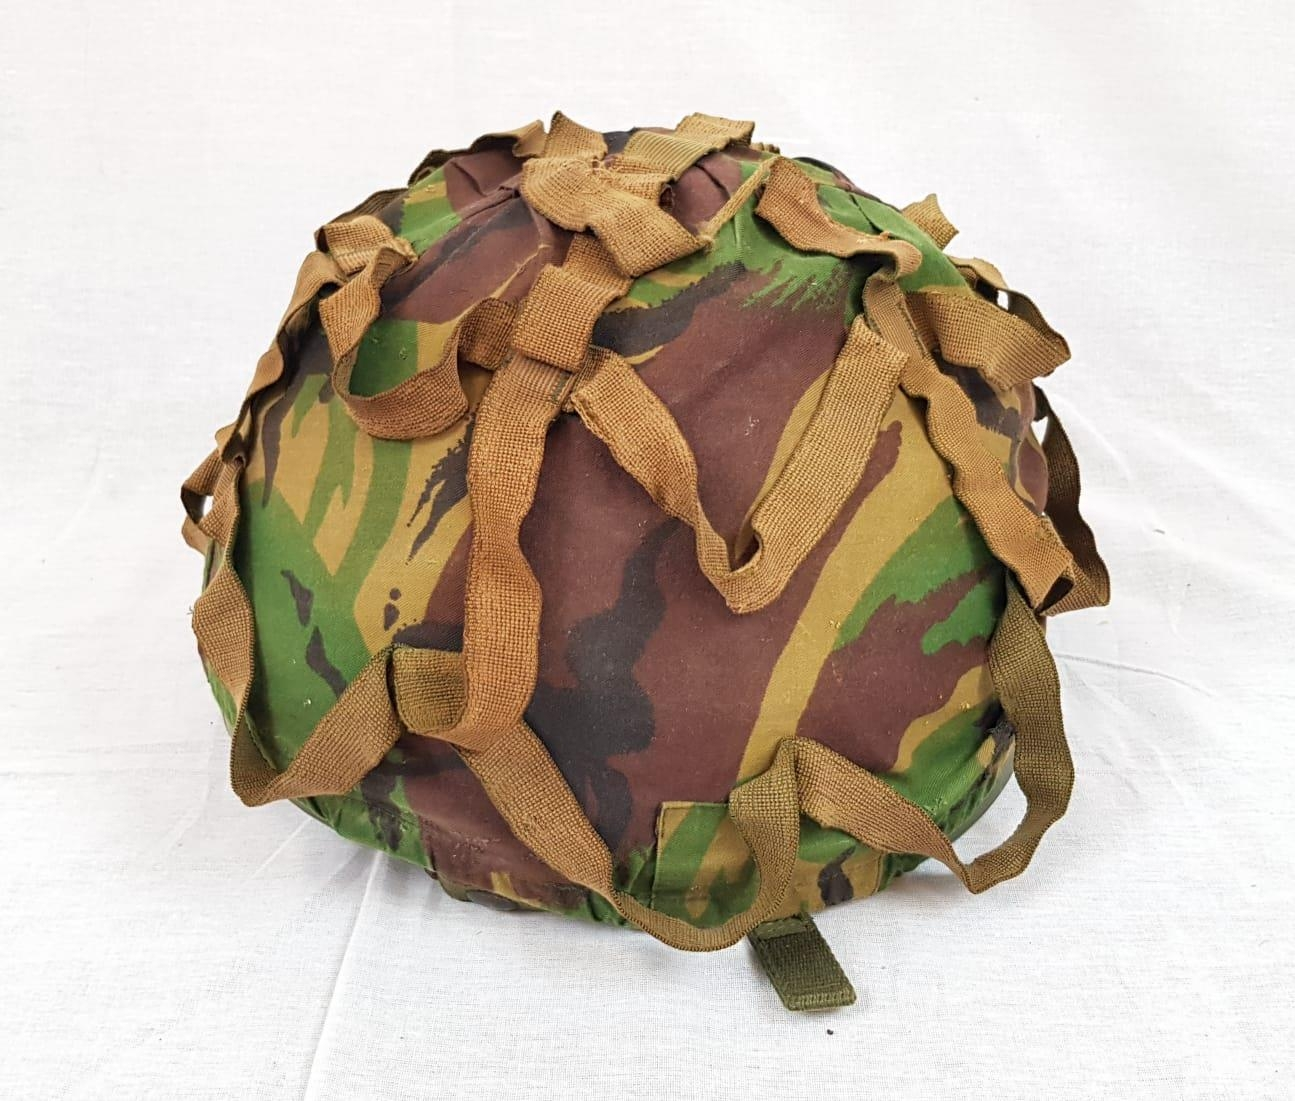 Military Issue Ballistic HELMET previously issued to Pte Cargill, 4 Platoon (as marked on the - Image 2 of 4